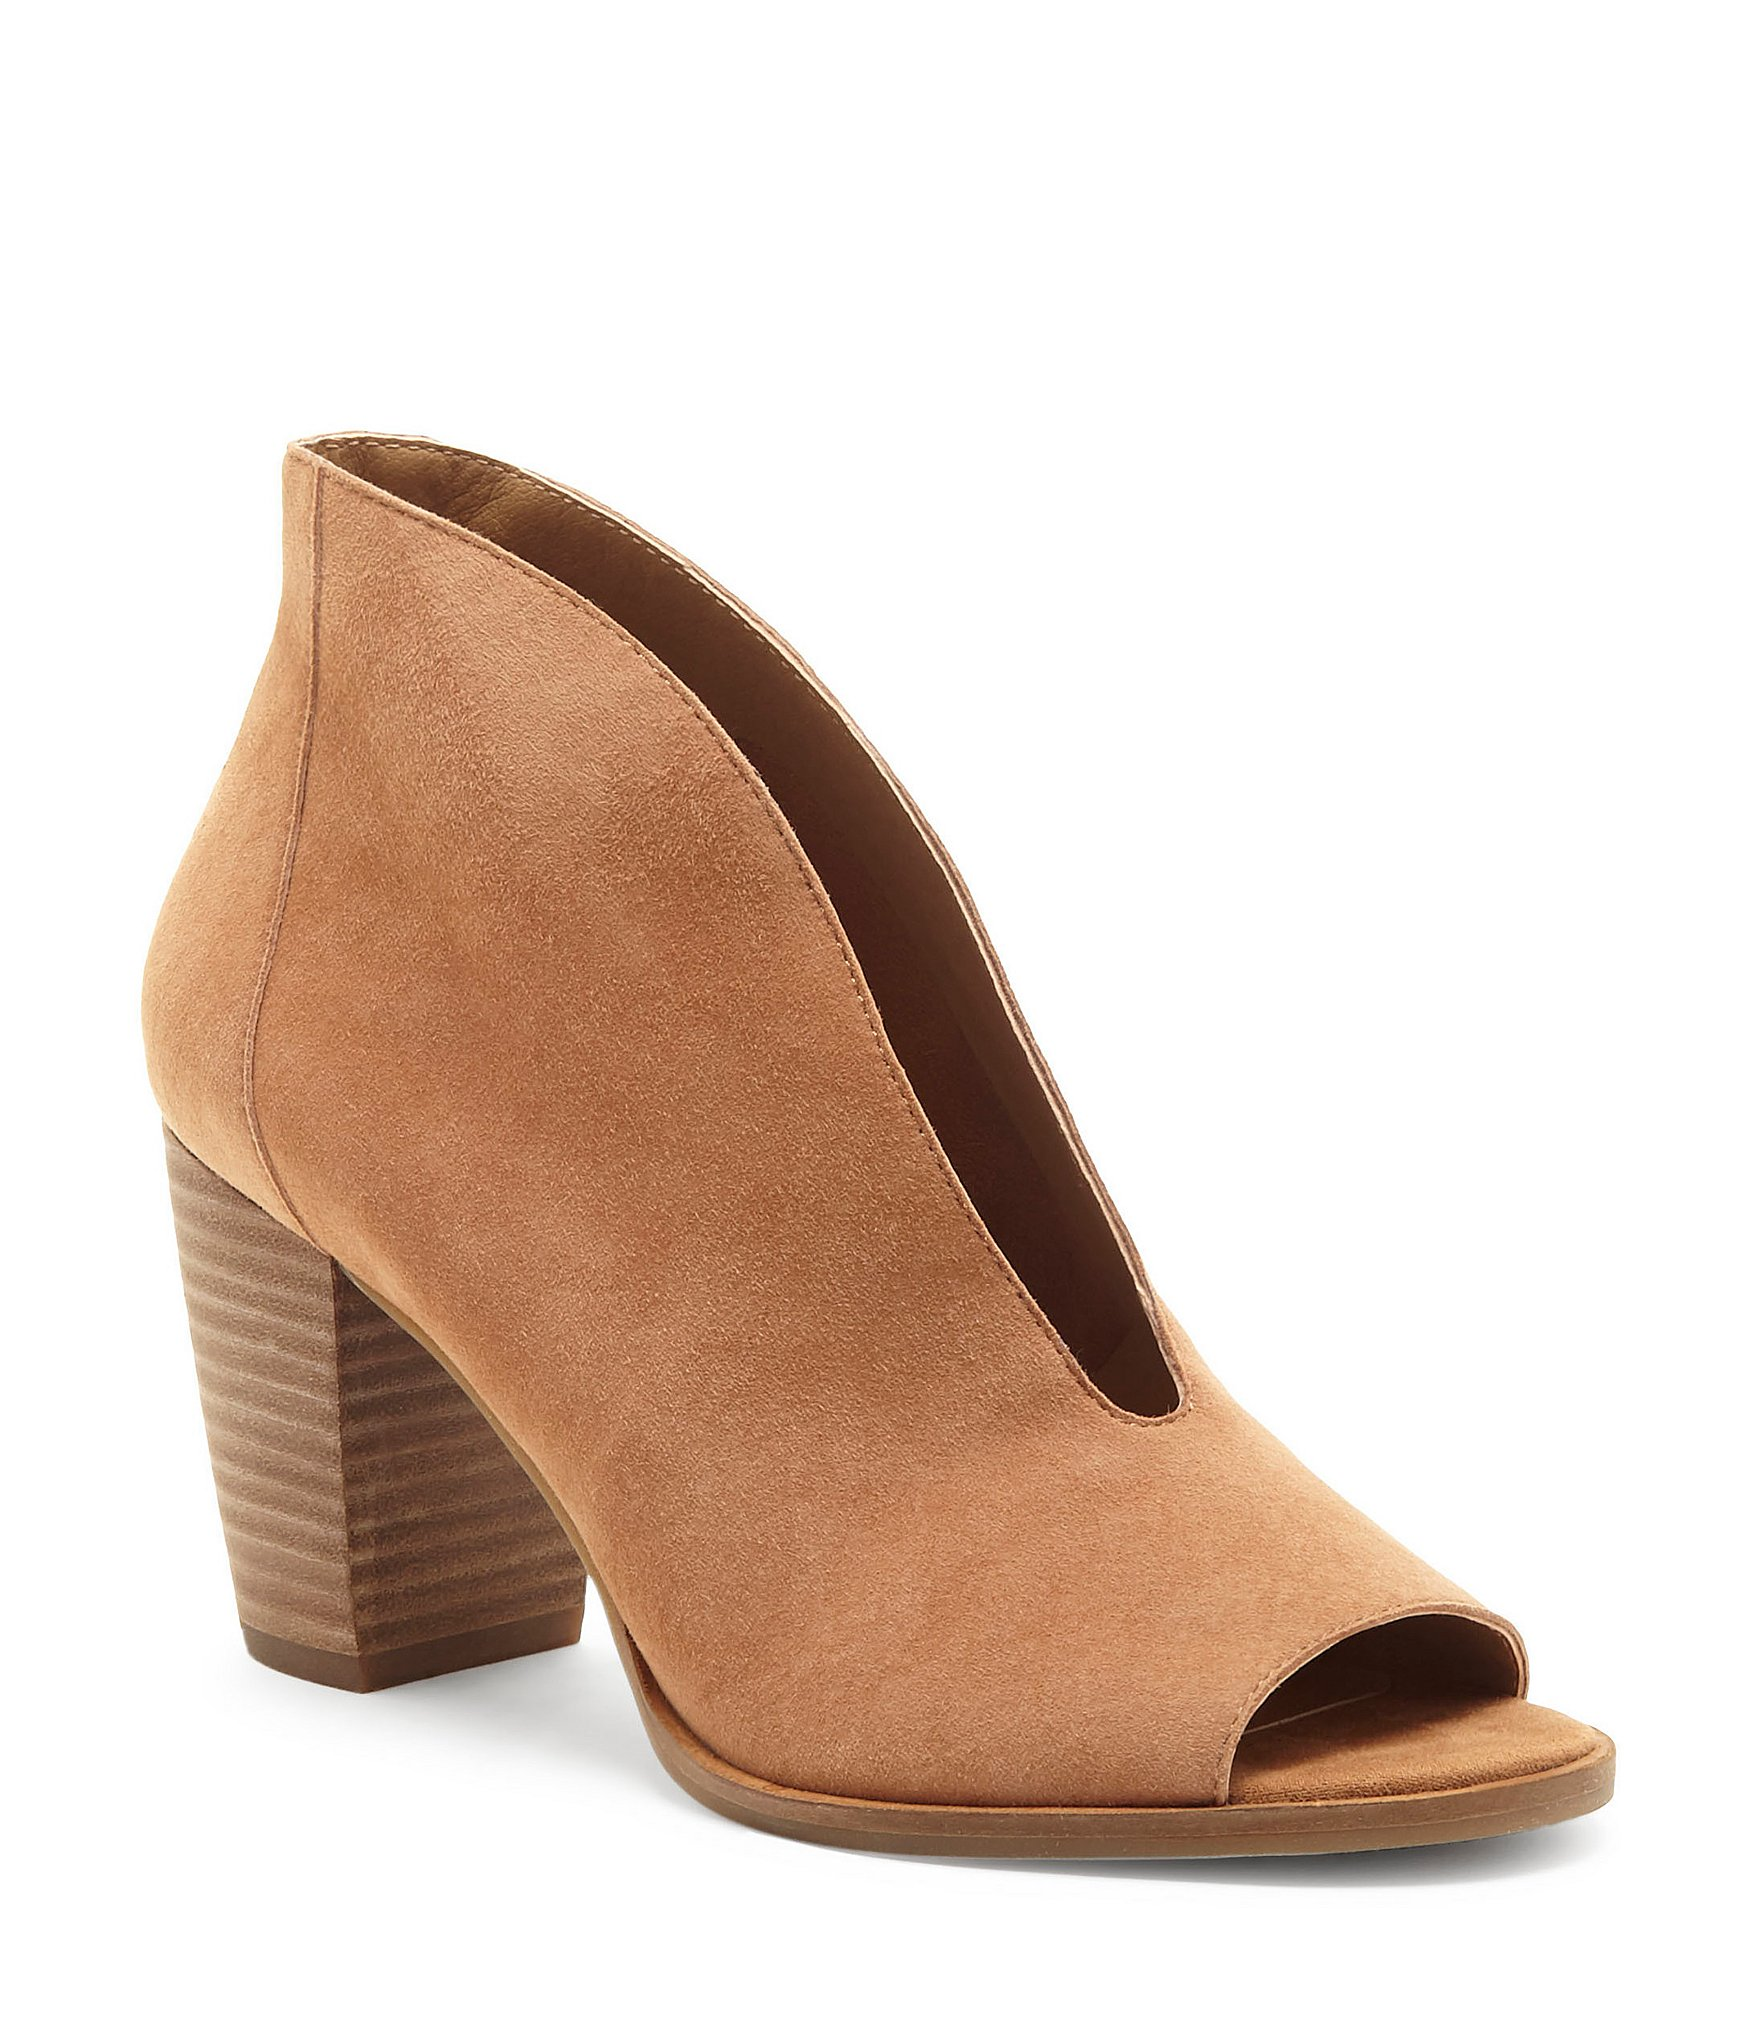 e69c0fa2b6d lucky brand bootie  Shoes for Women